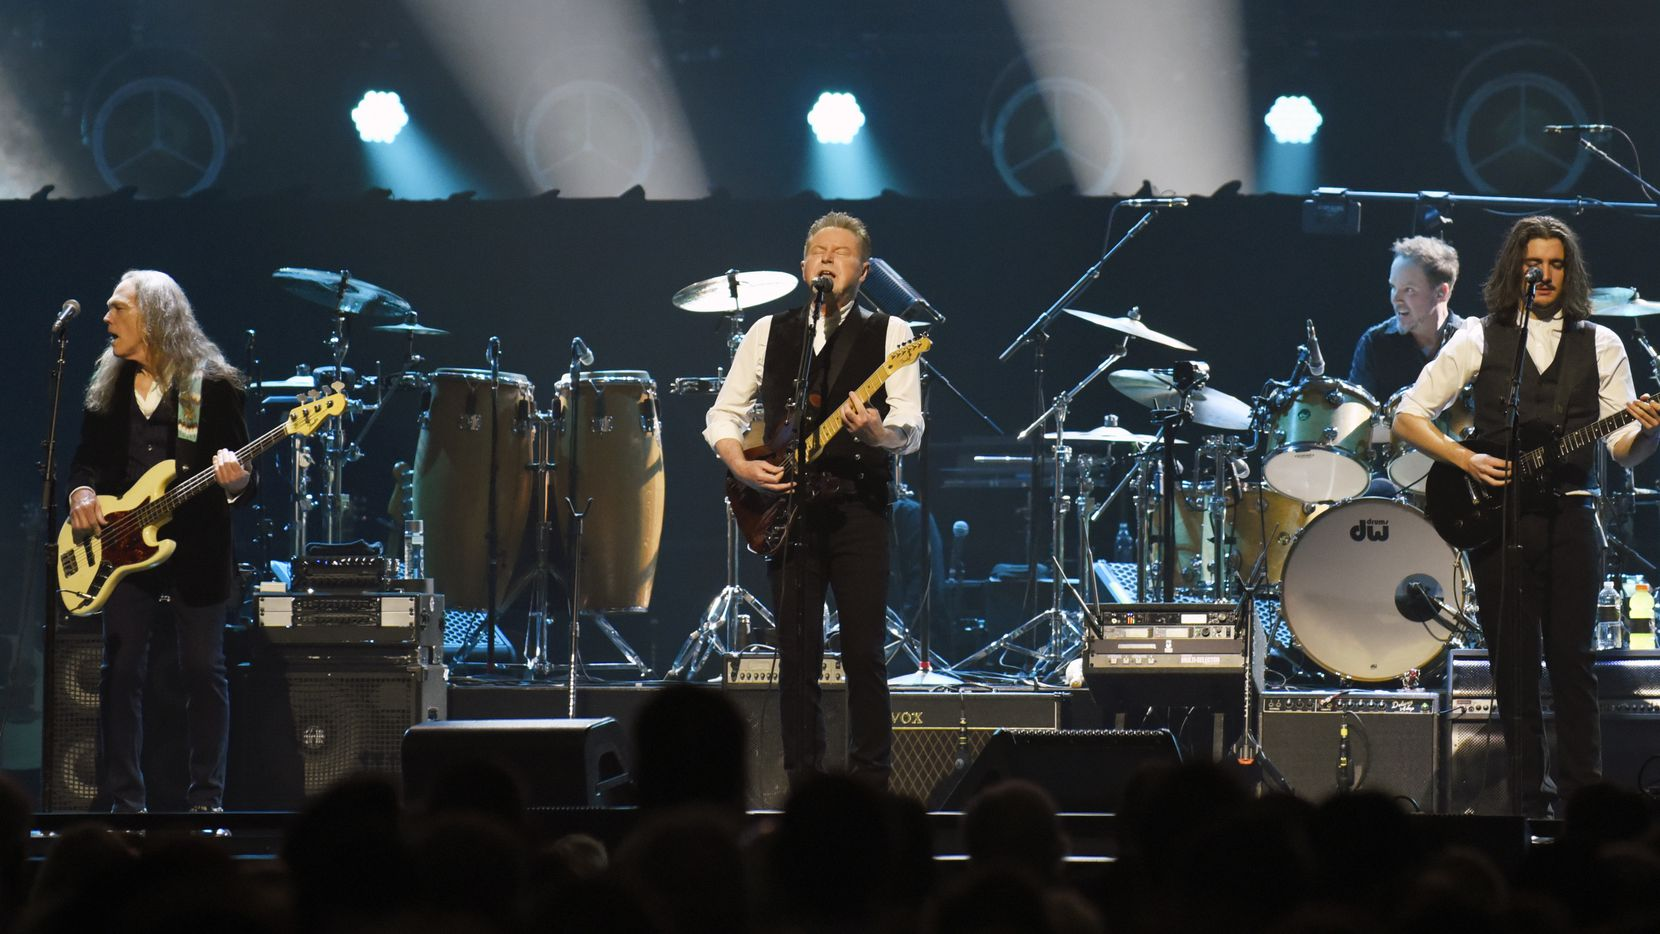 Don Henley (center) performed with other members of the Eagles at the American Airlines Center in Dallas on Feb. 29, shortly before the pandemic intensified.